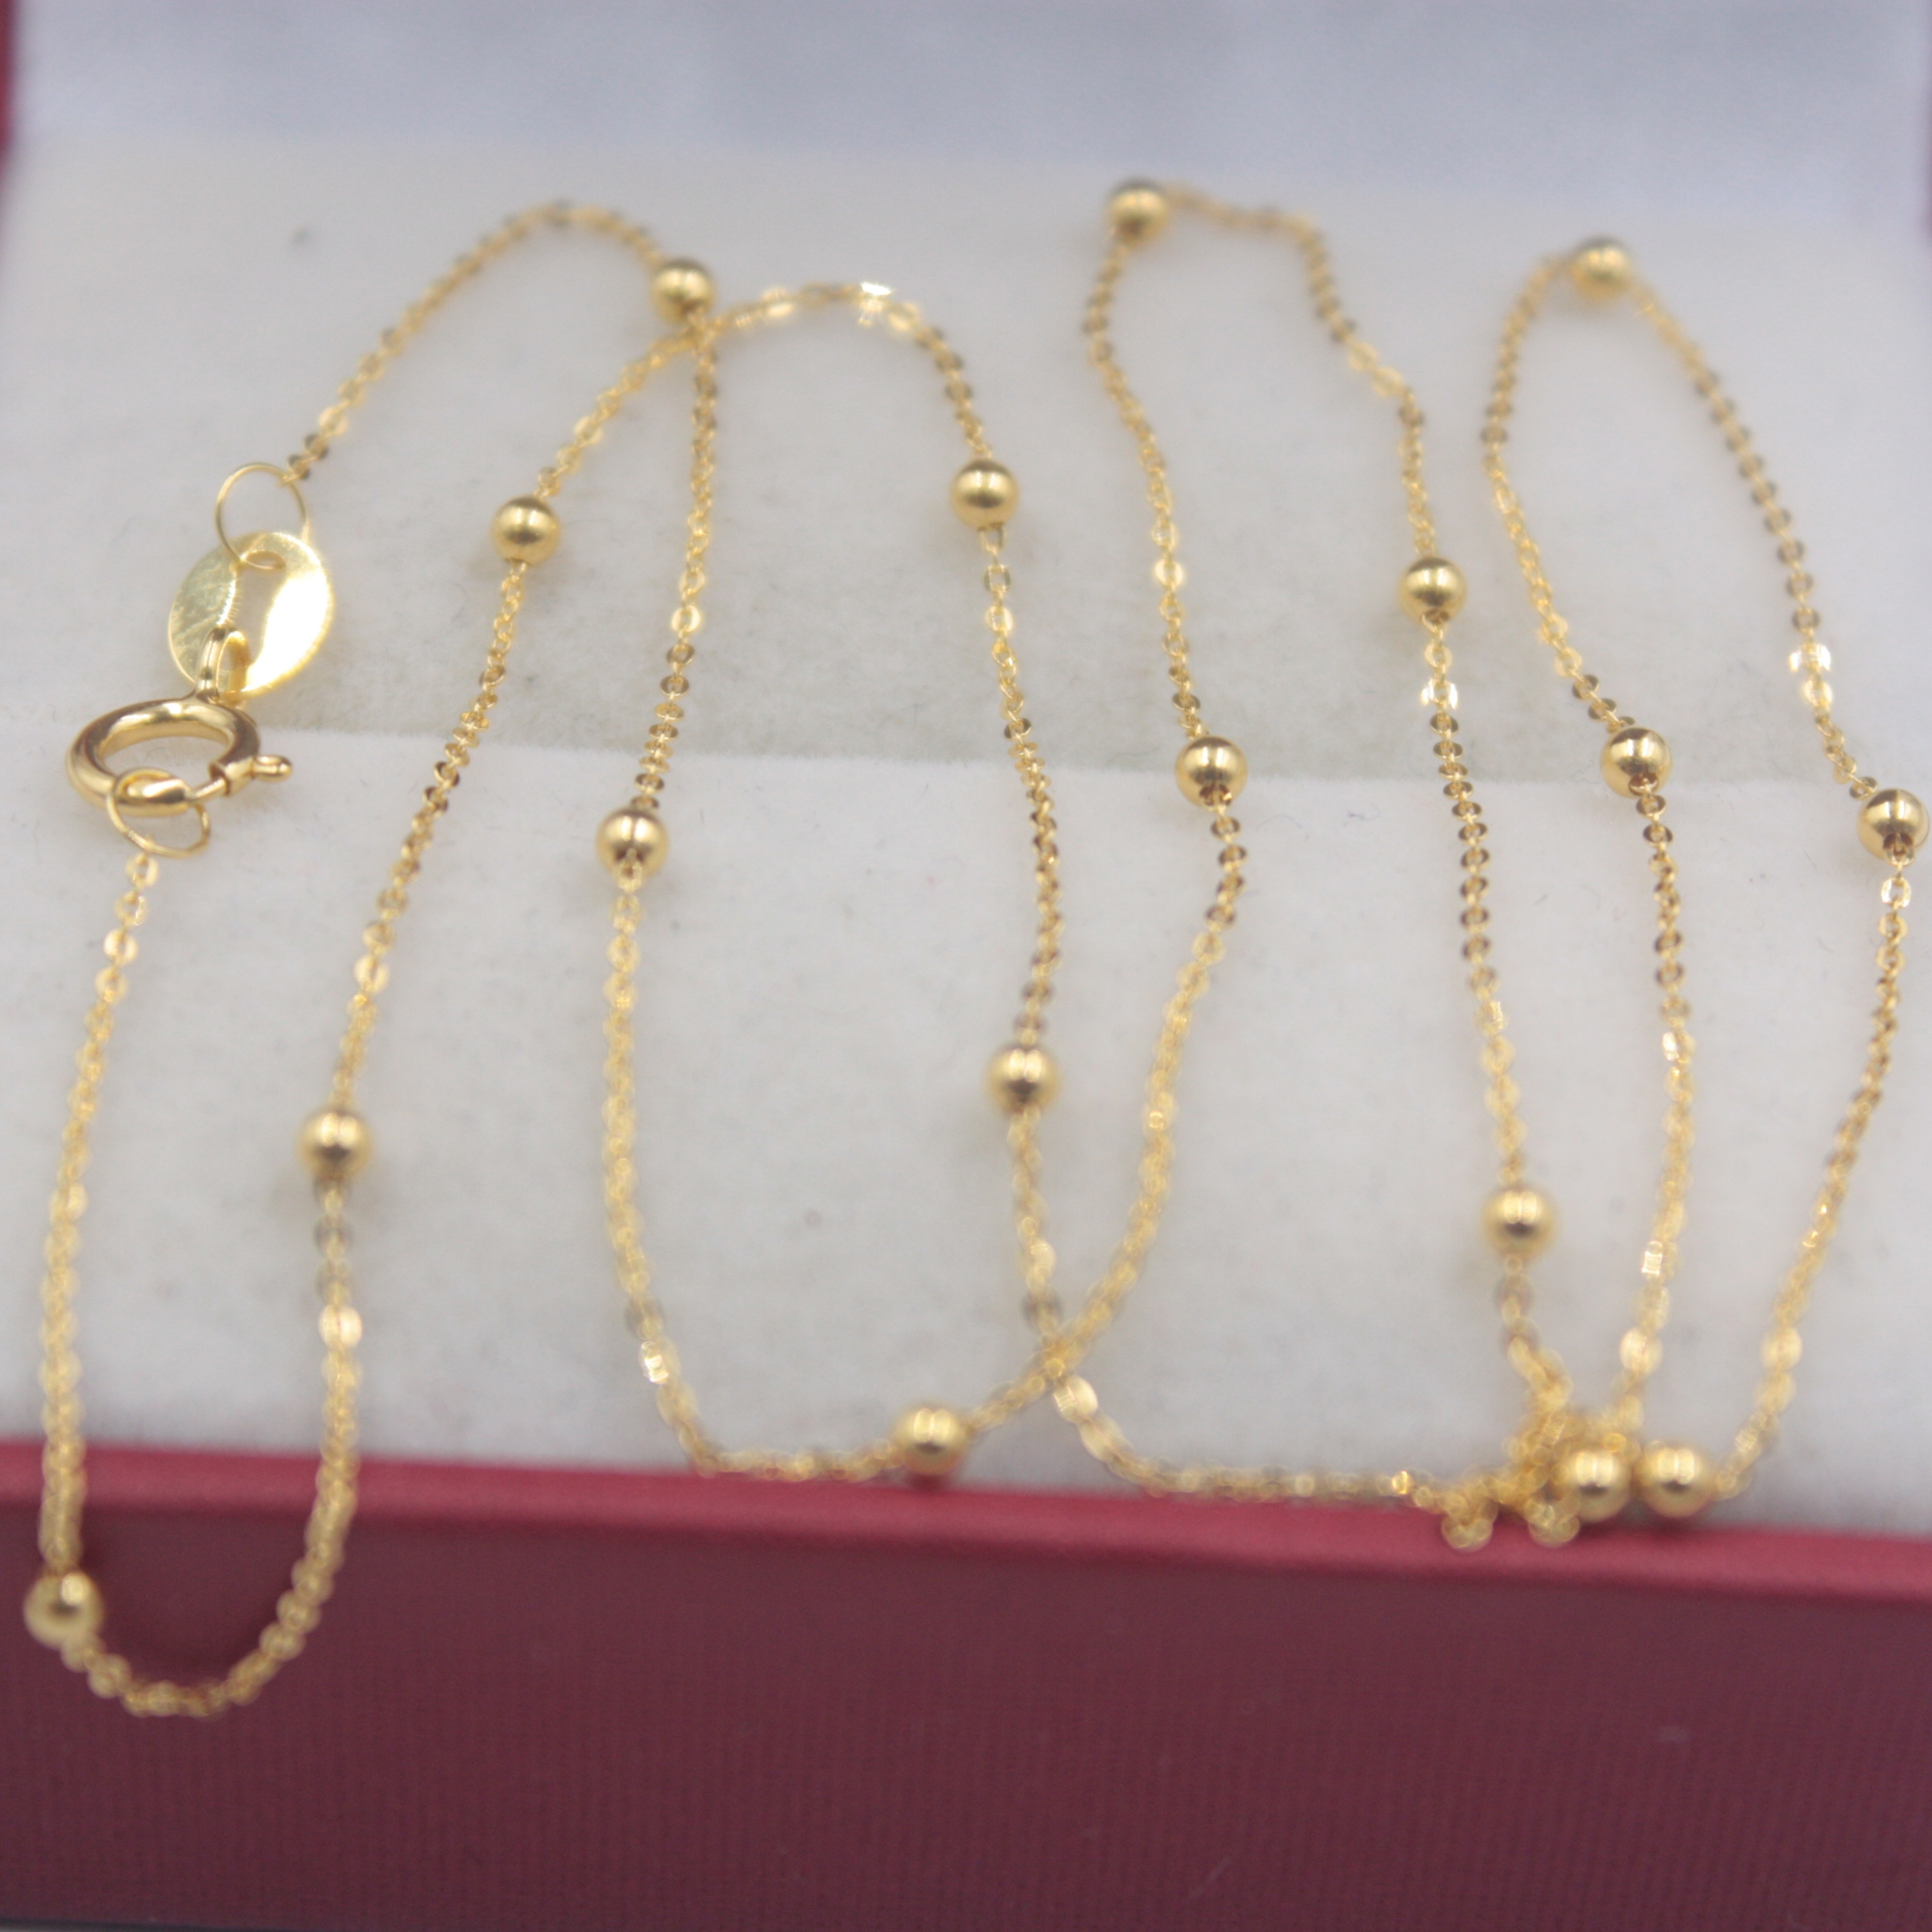 Real Pure 18K Yellow Gold Chain 1.5mmW Bead O Rolo Link Women's Wife Wealthy Best Gift Necklace Friend Gift Female Girl Chain image